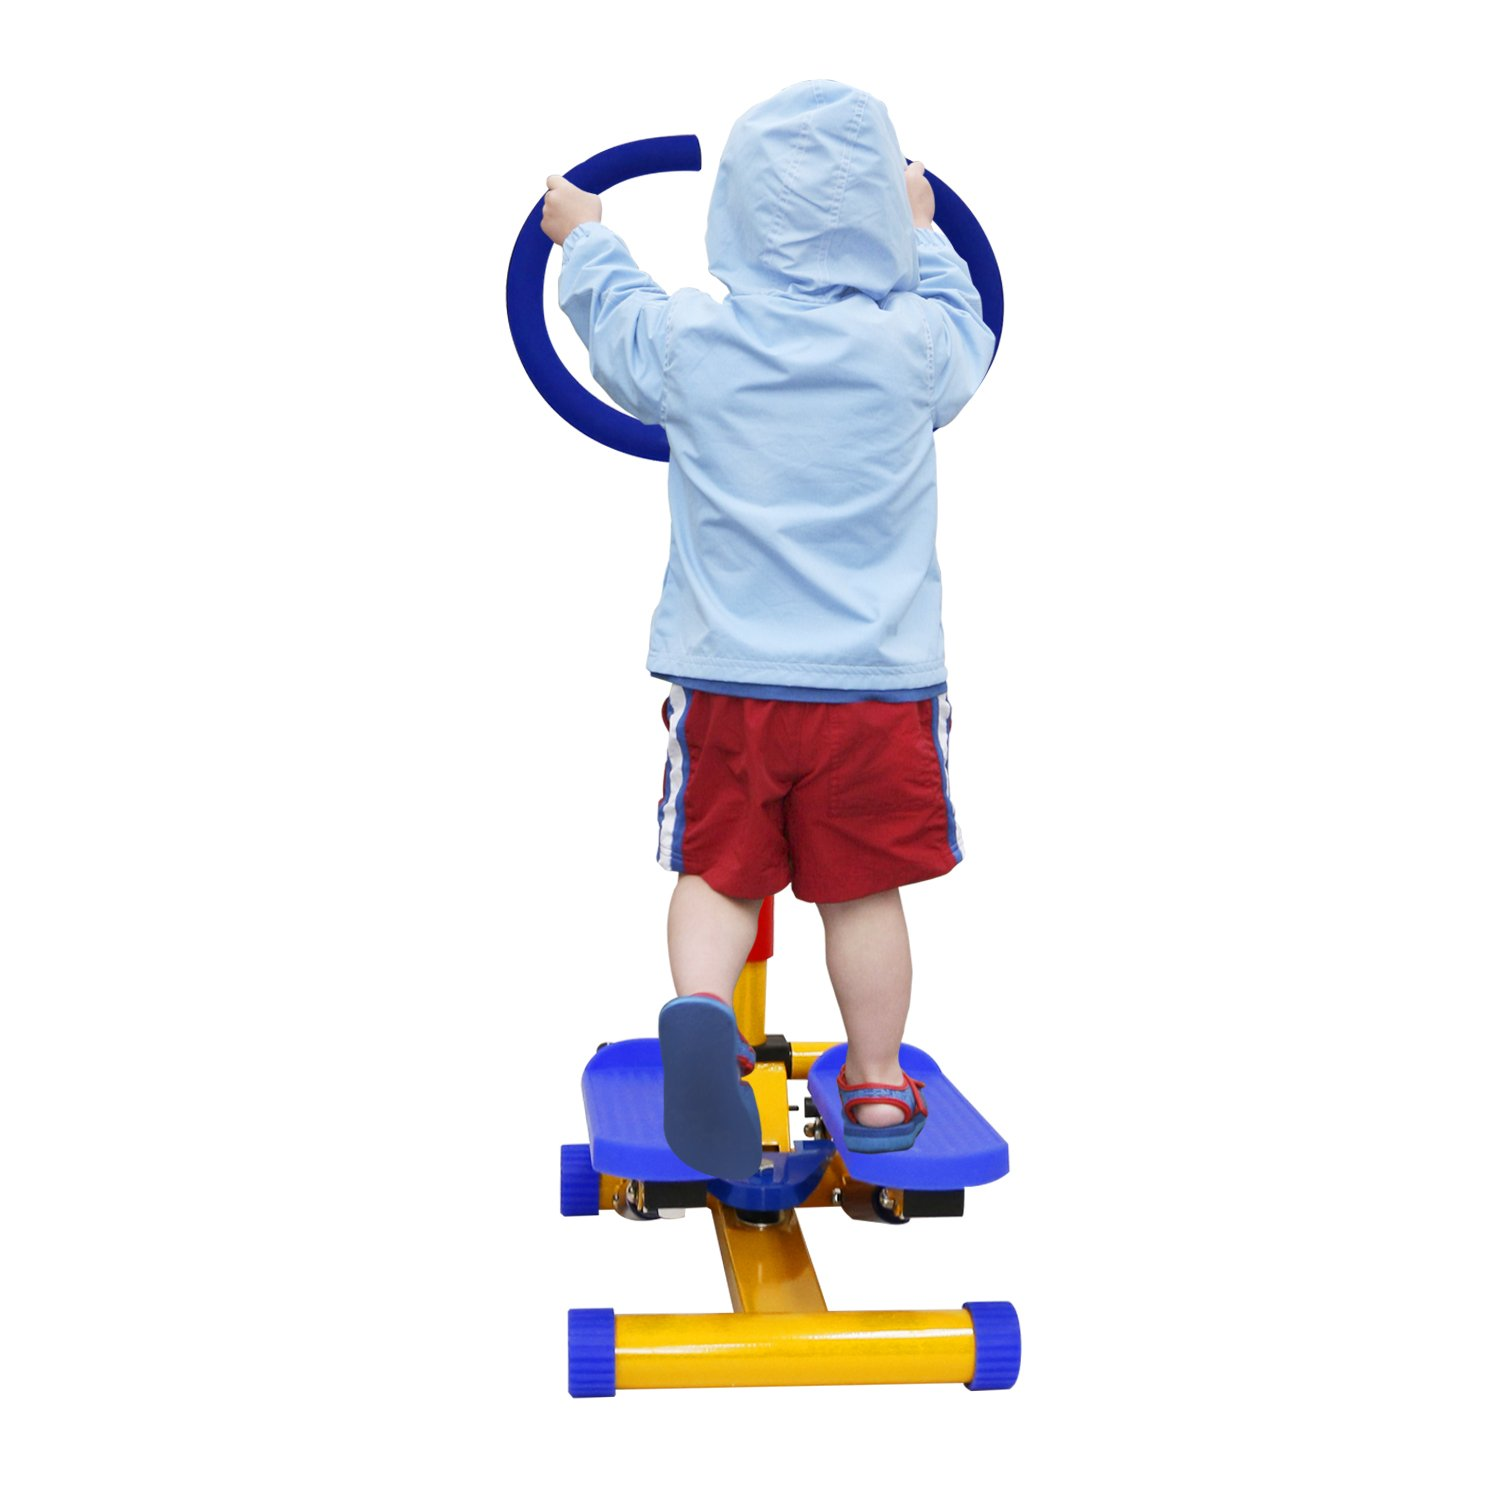 Kinbor Fun and Fitness Exercise Equipment for Kids Children Stepper Step Equipment Thigh Machine